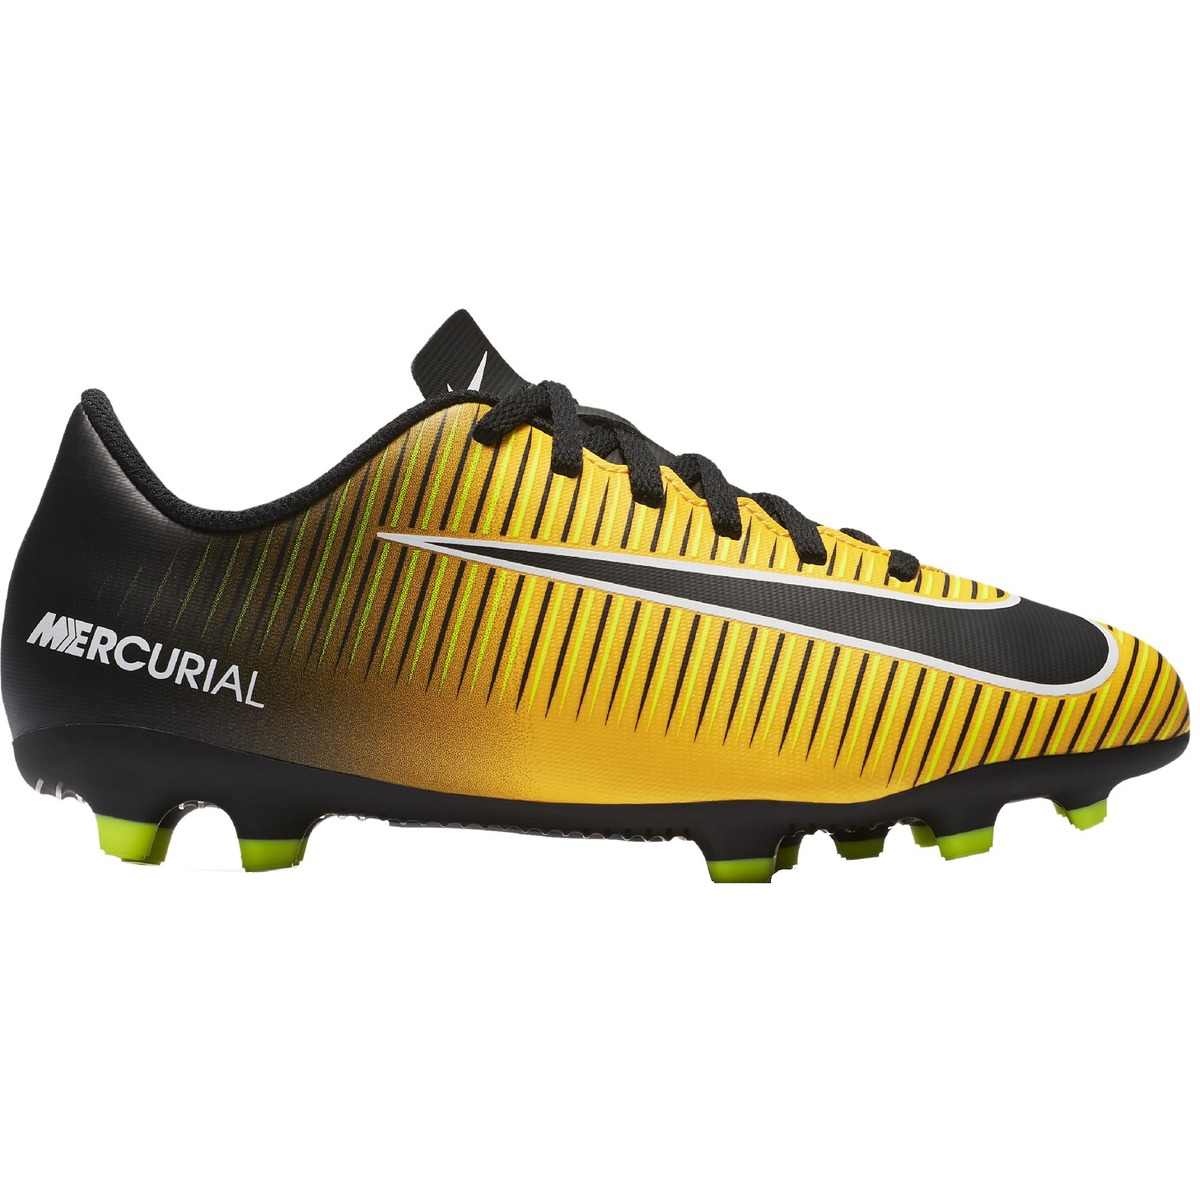 011d8357 Buy cheap nike mercurial. Shop every store on the internet via ...